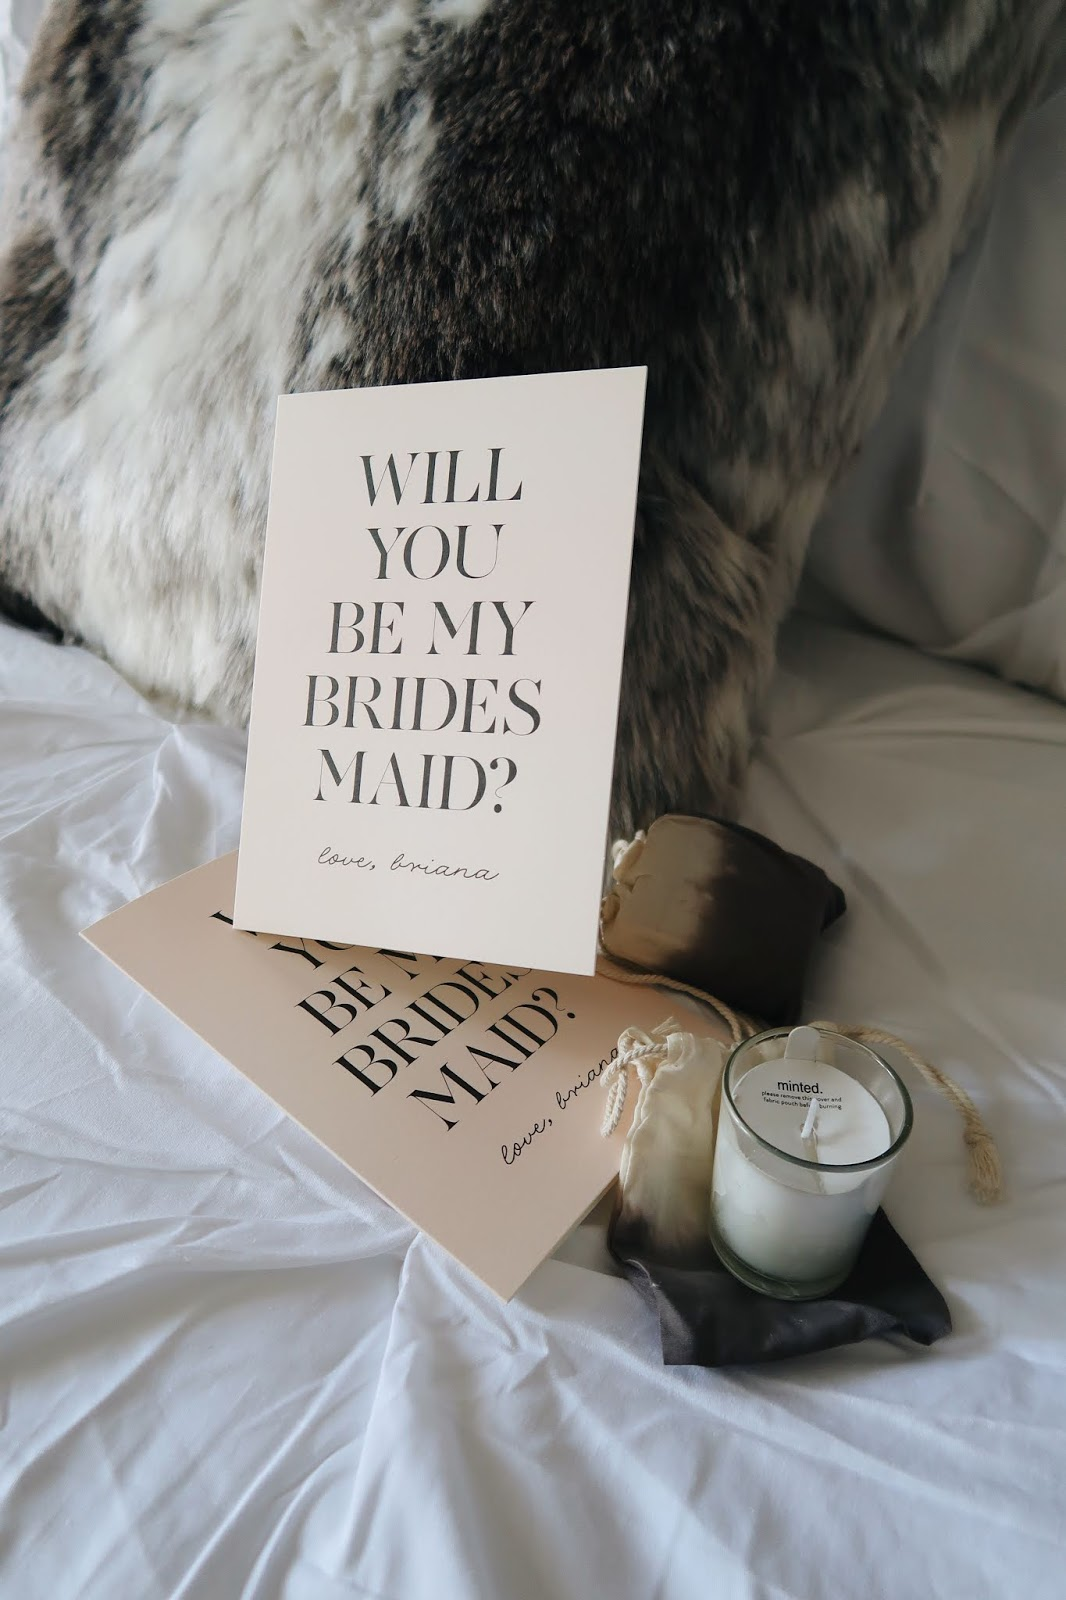 How to Ask Your Bridesmaids: Ideas for Brides on a Budget